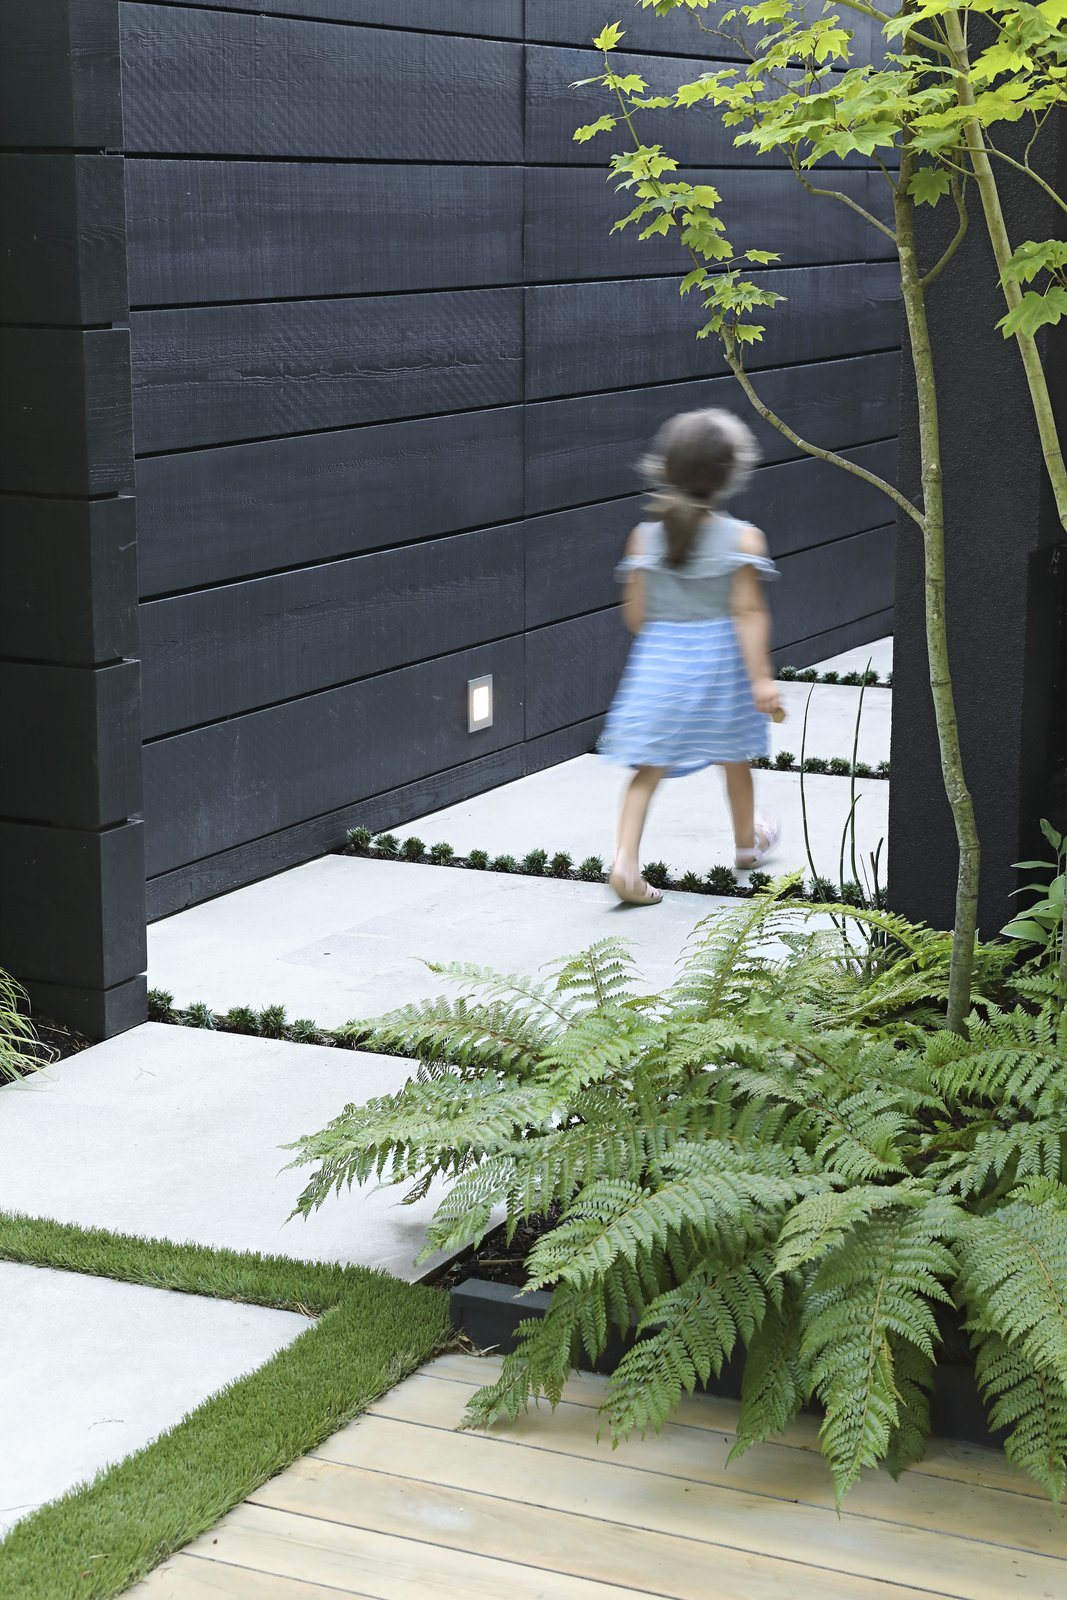 Outdoor, Wood Fences, Wall, Horizontal Fences, Wall, Concrete Patio, Porch, Deck, Side Yard, Trees, and Shrubs Hana Bea, 6, follows the concrete pavers that lead from the front yard to the side entrance.  Photos from A Low-Key Landscape Gives a  Vancouver Family a New Lease on Outdoor Living